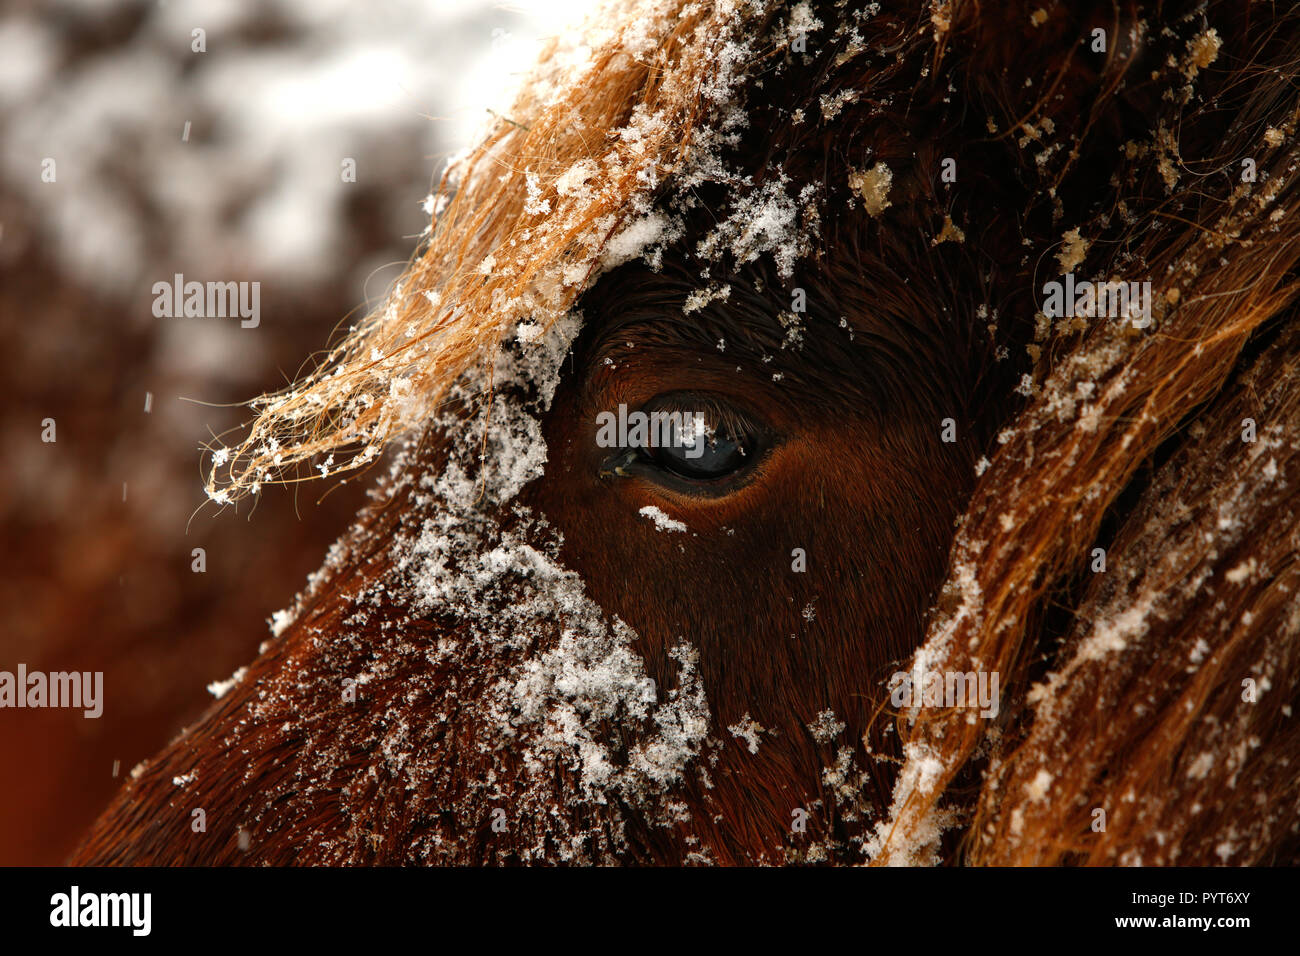 Detailed close up portrait of a snowy brown Horse, winter - Stock Image